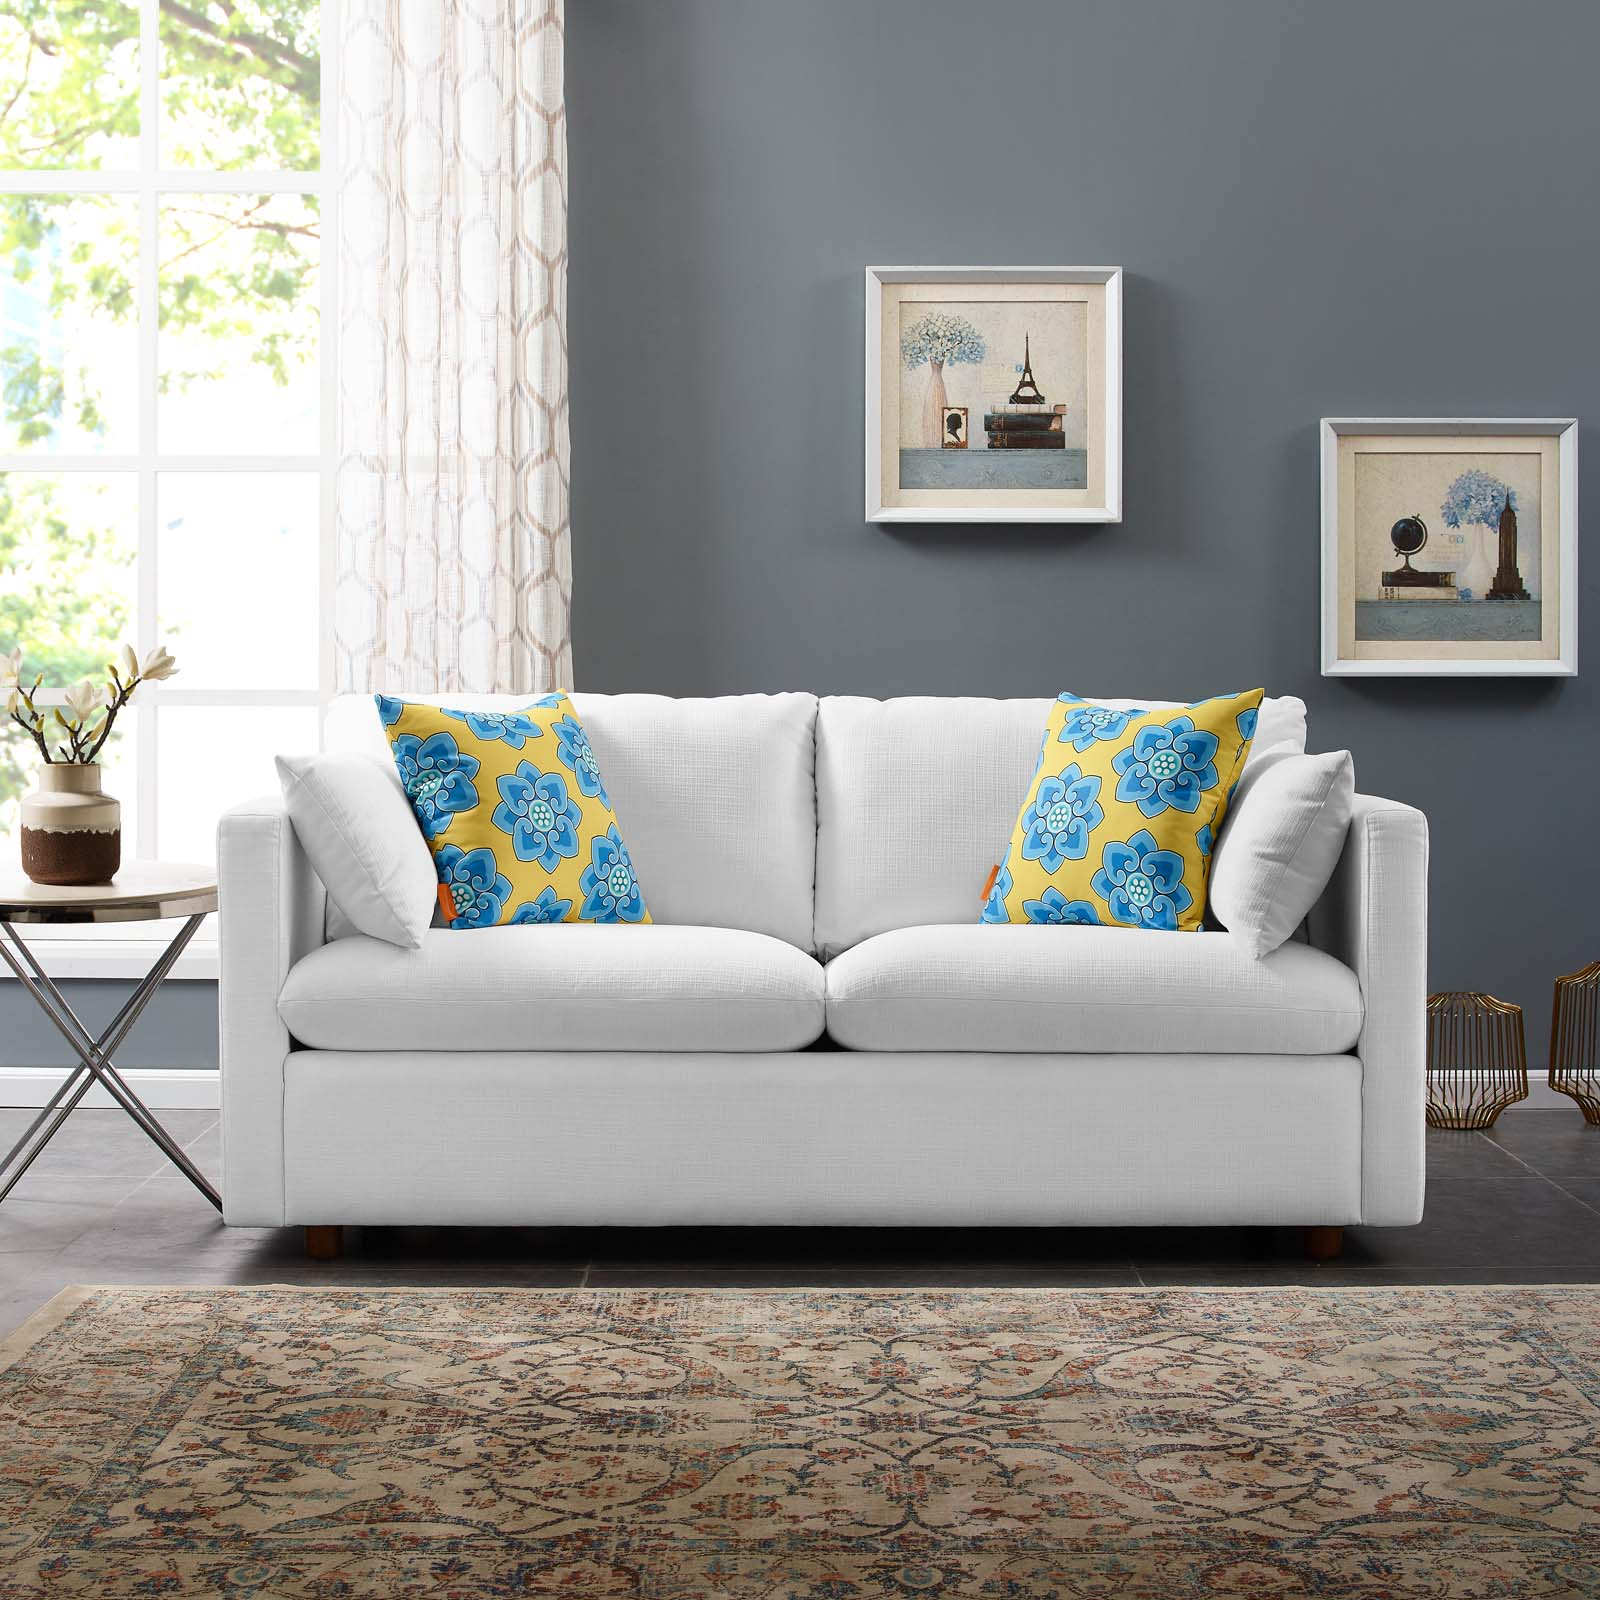 Activate Upholstered Fabric Sofa White Within Fabric Sofas (View 1 of 15)